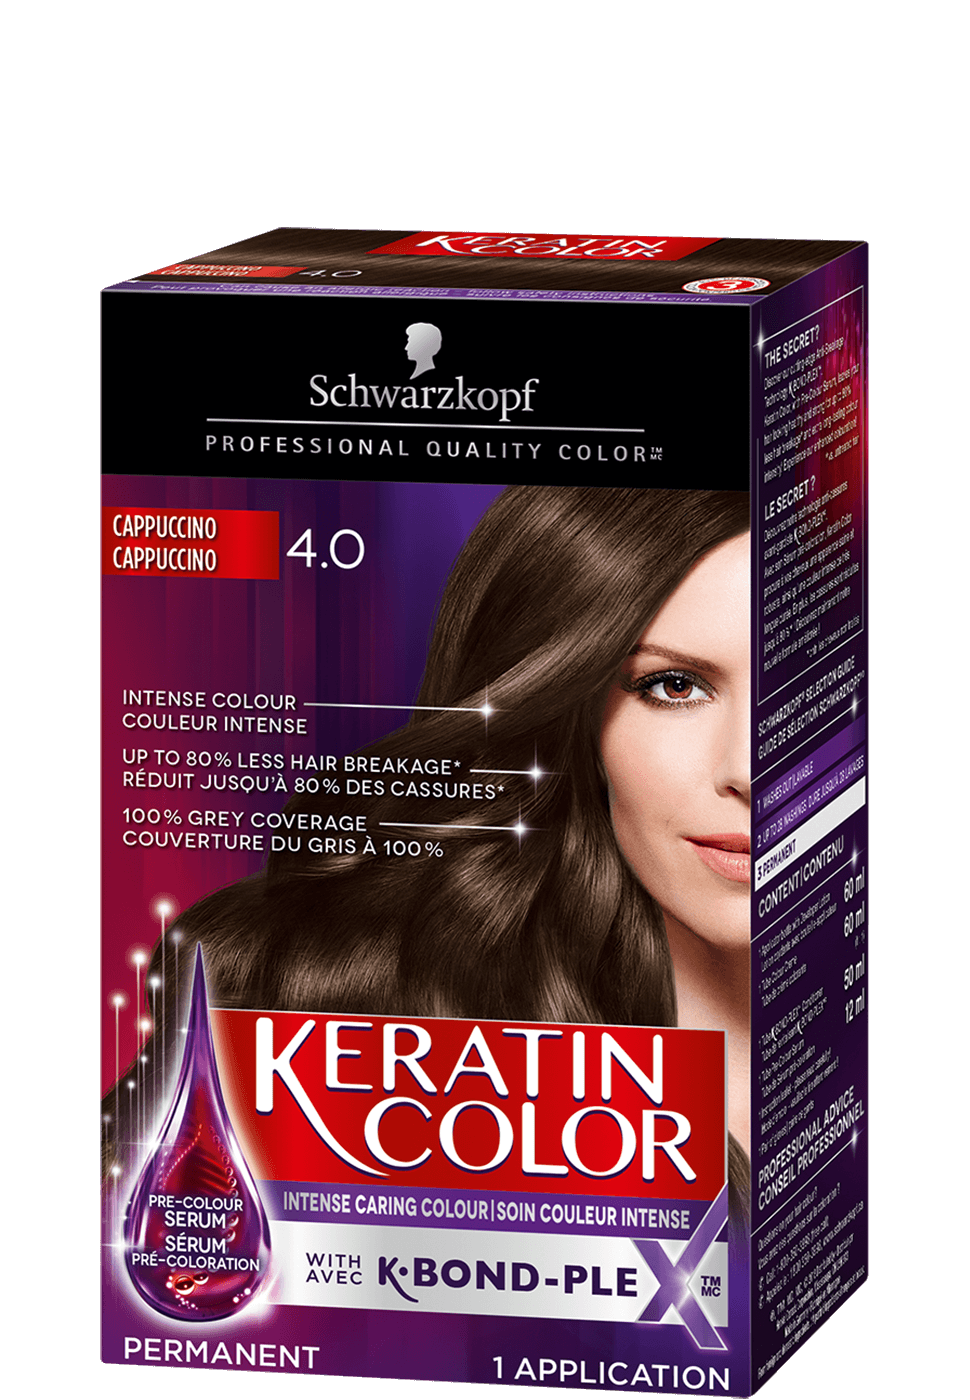 Keratin_Color_en_4_0_970x1400